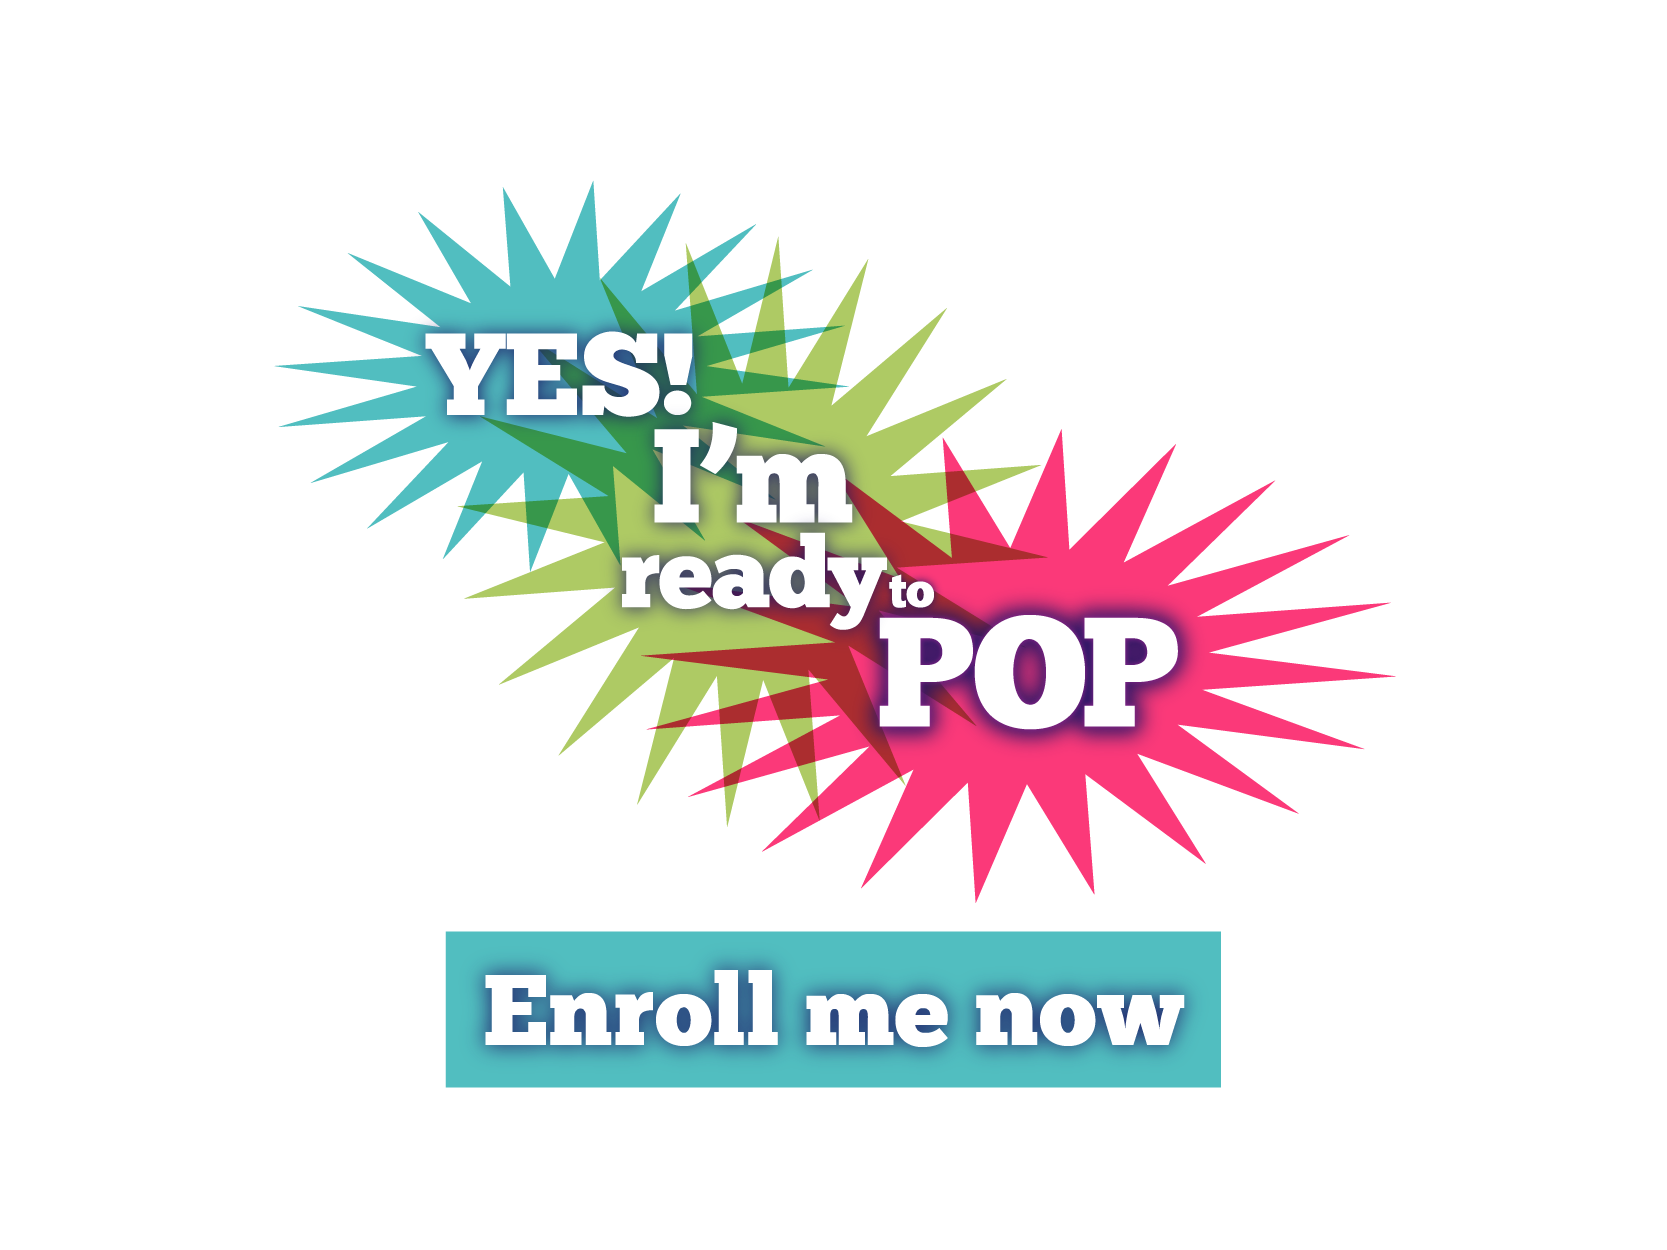 Yes! Enroll Me Now! - Ready To Pop PNG